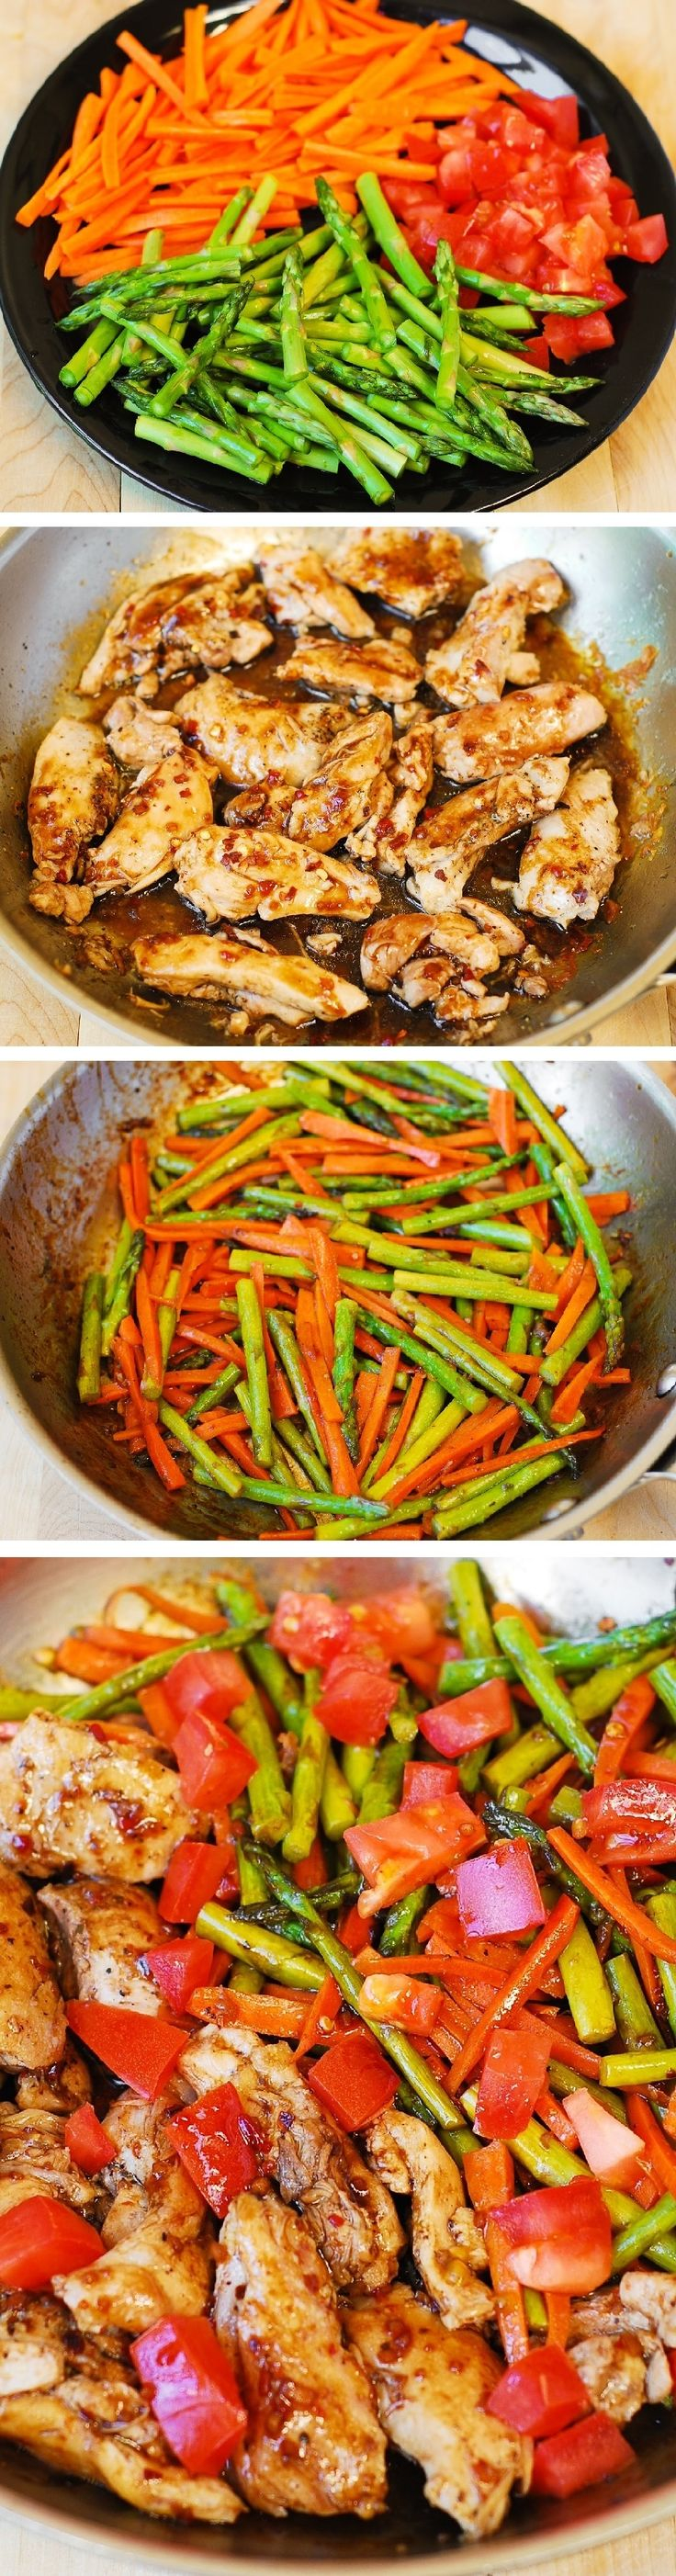 Balsamic Chicken with Asparagus and Tomatoes by bhg: Delicious, healthy, low fat, low cholesterol, low calorie meal, packed with fiber (vegetables) and protein (chicken). #Chicken #Asparagus #Tomato #Balsamic #Healthy #Fast